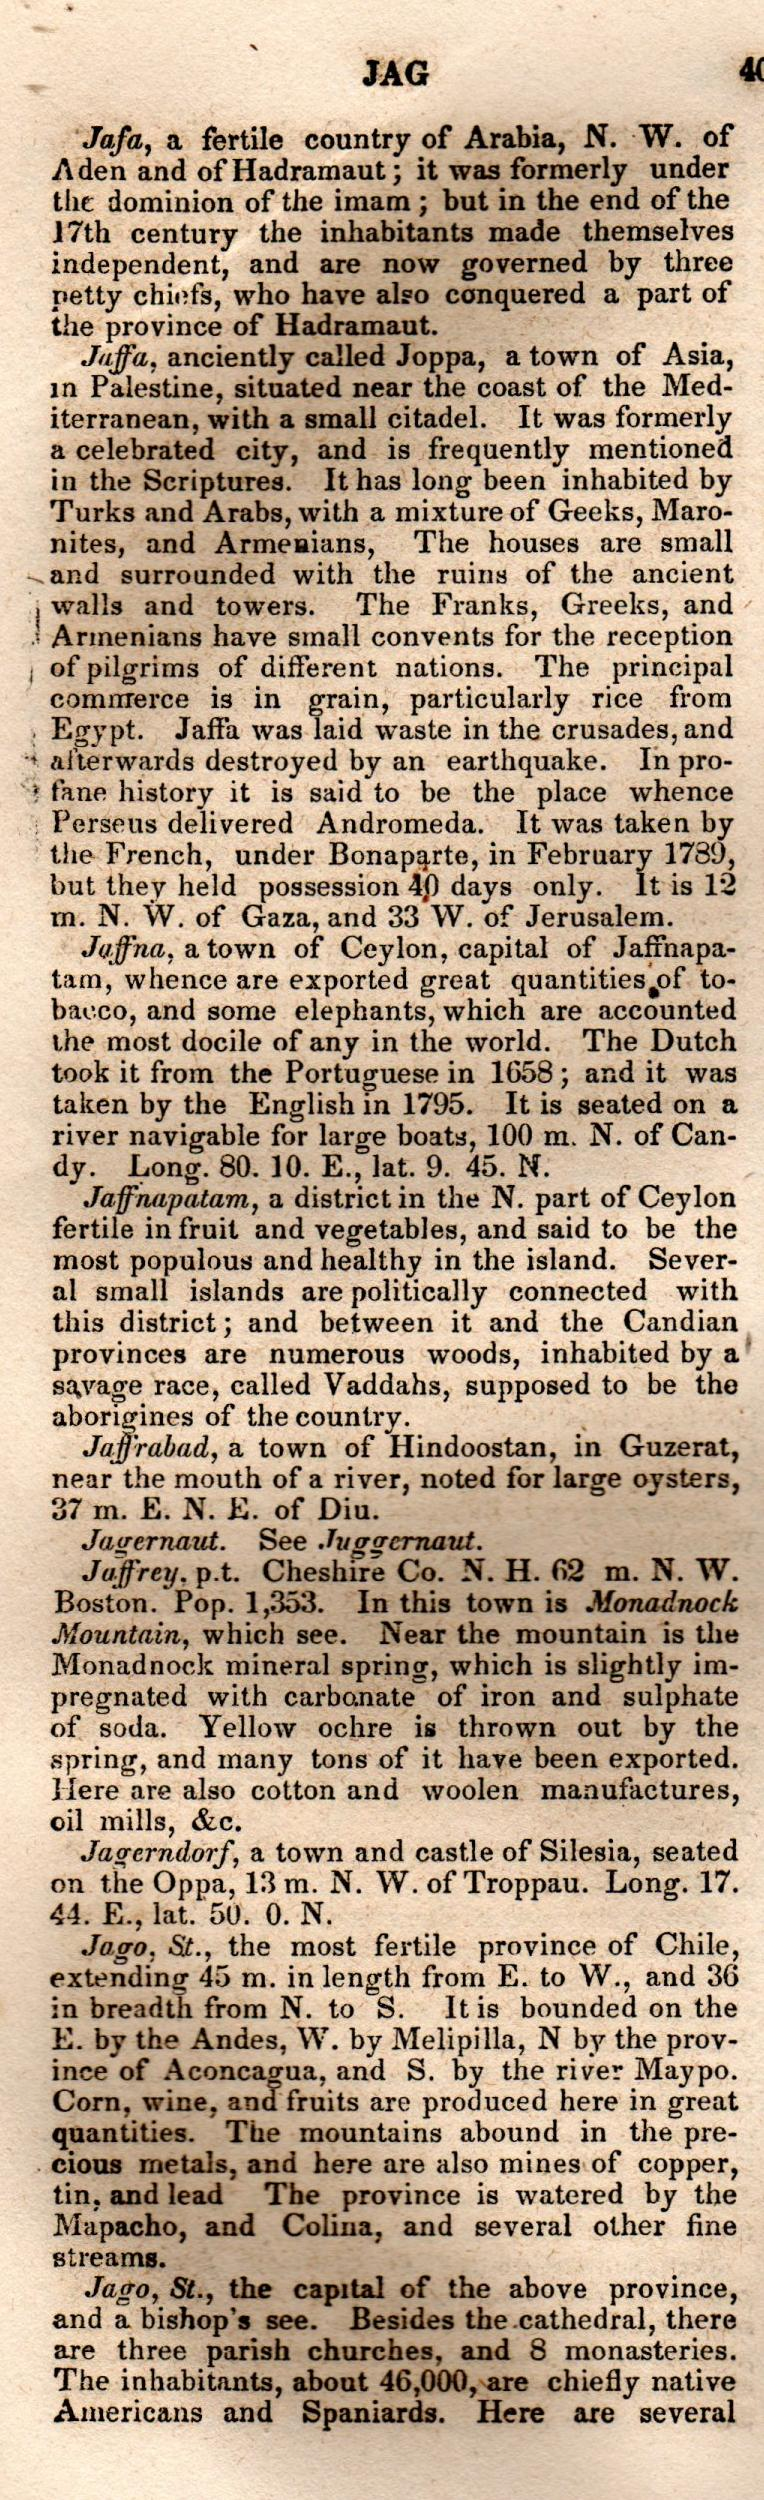 Brookes' Universal Gazetteer (1850), Page  404  Left Column